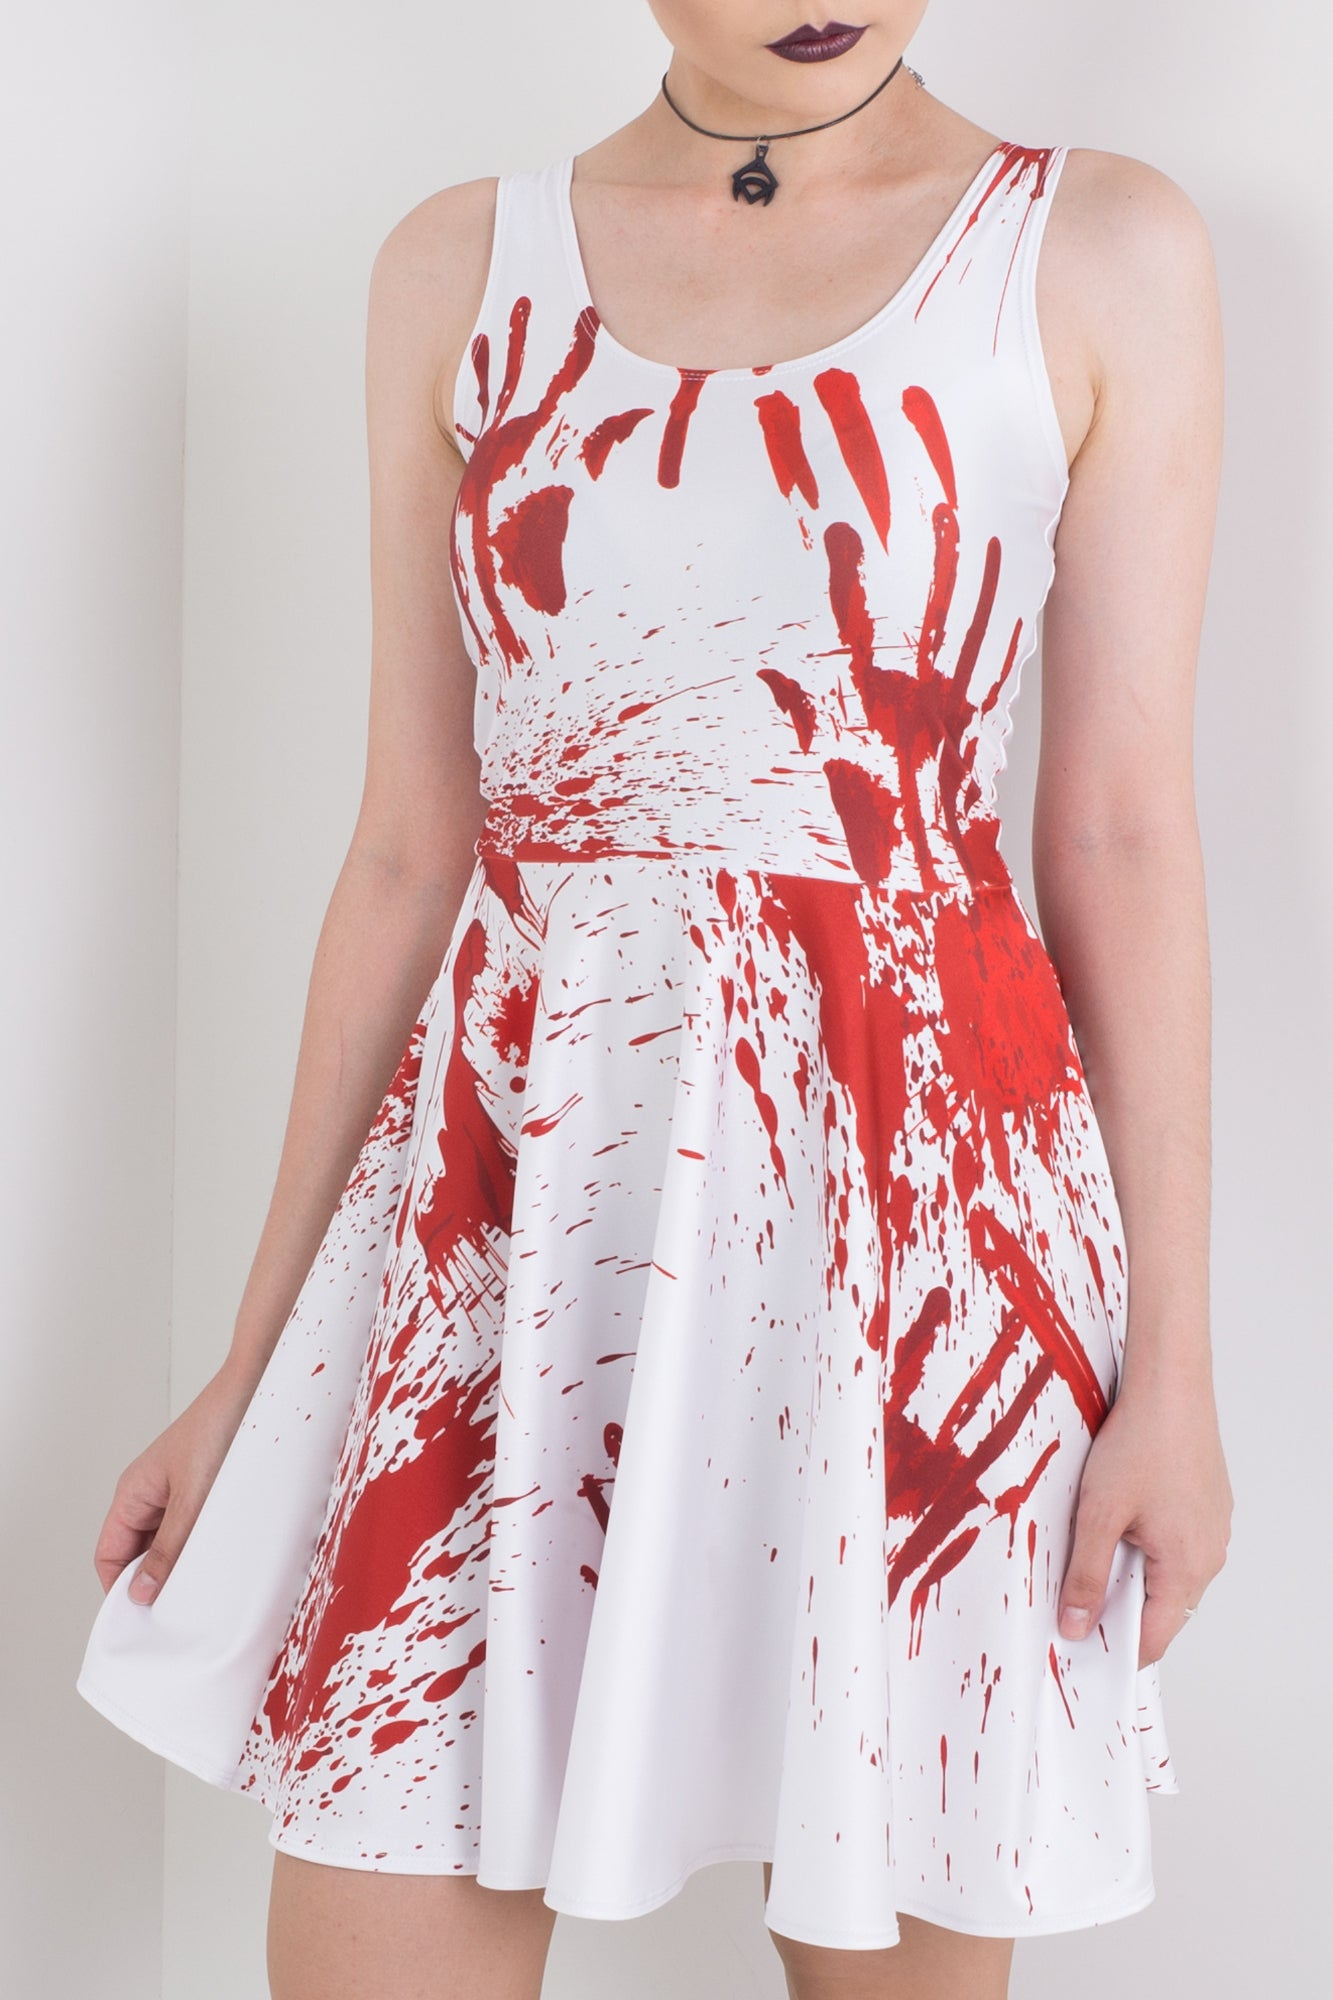 Massacre 2 Skater Dress